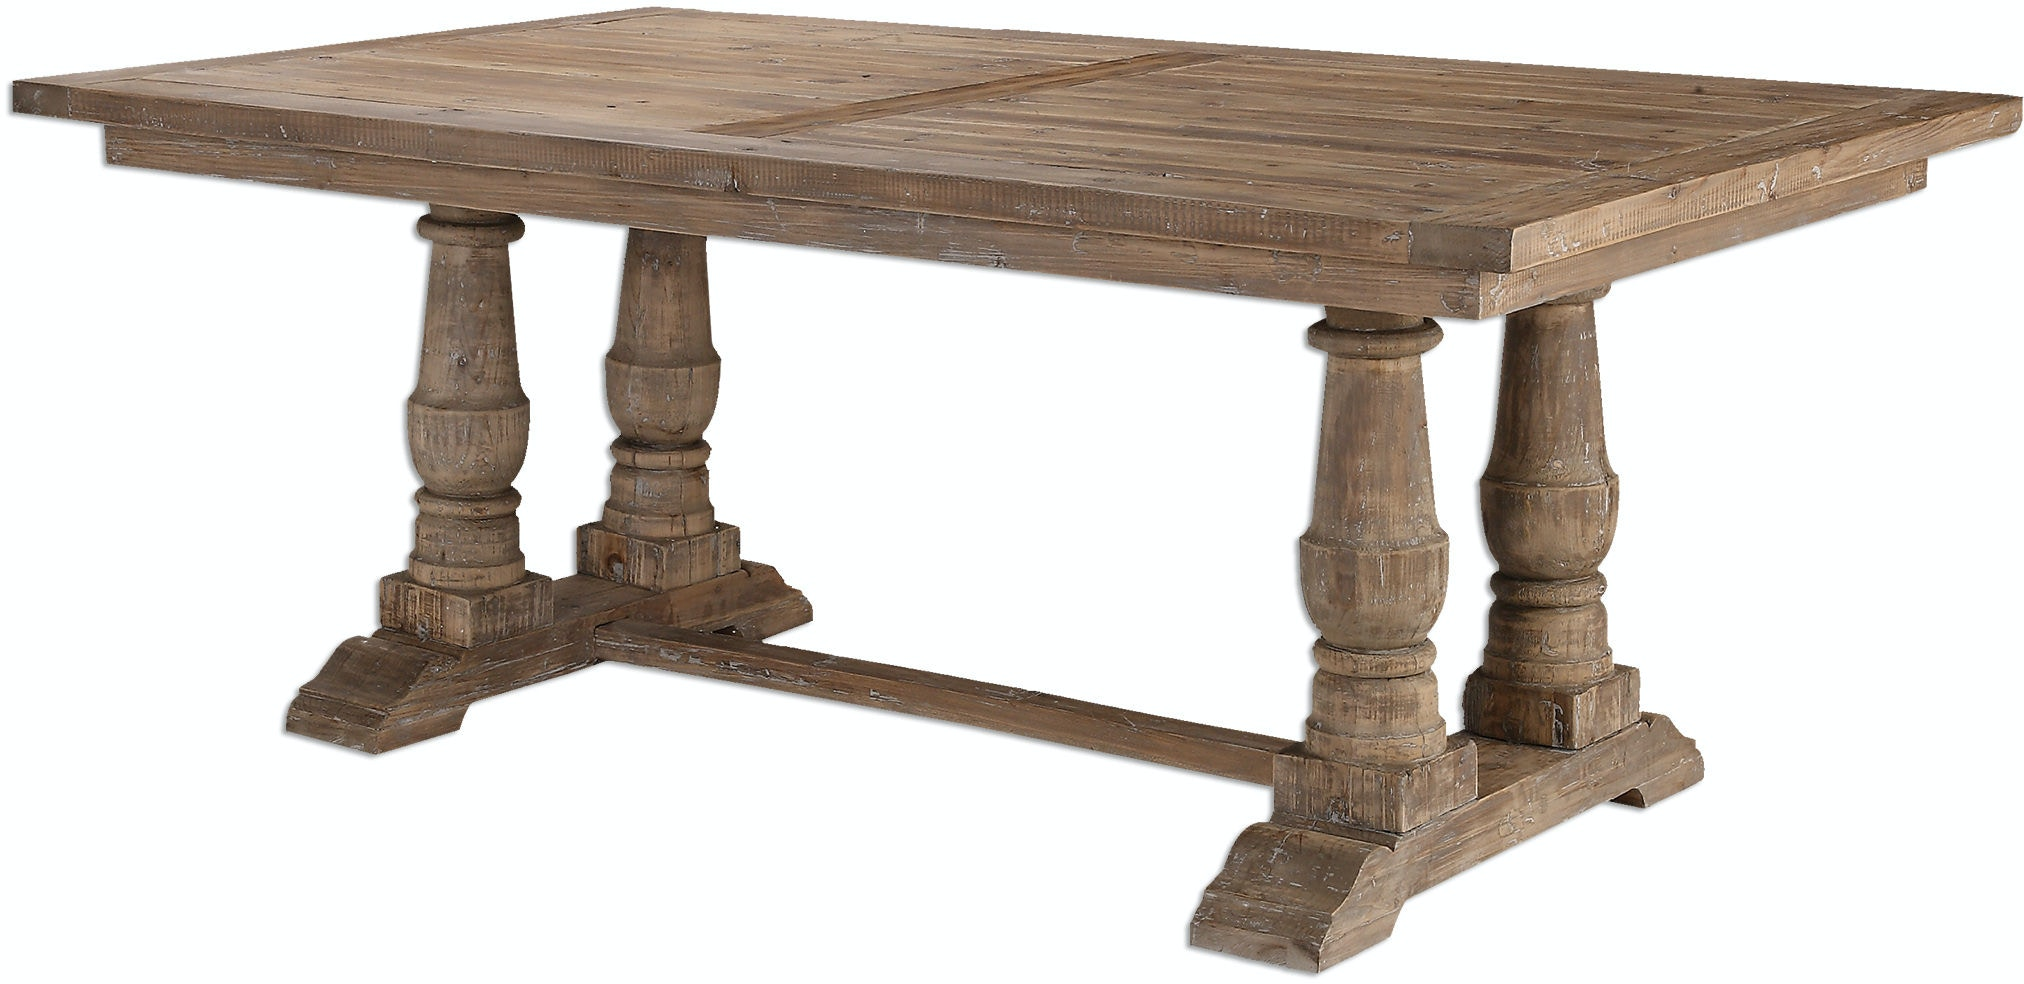 Uttermost Dining Room Stratford Salvaged Wood Dining Table  : 24557 5 from www.issisandsons.com size 1024 x 768 jpeg 39kB